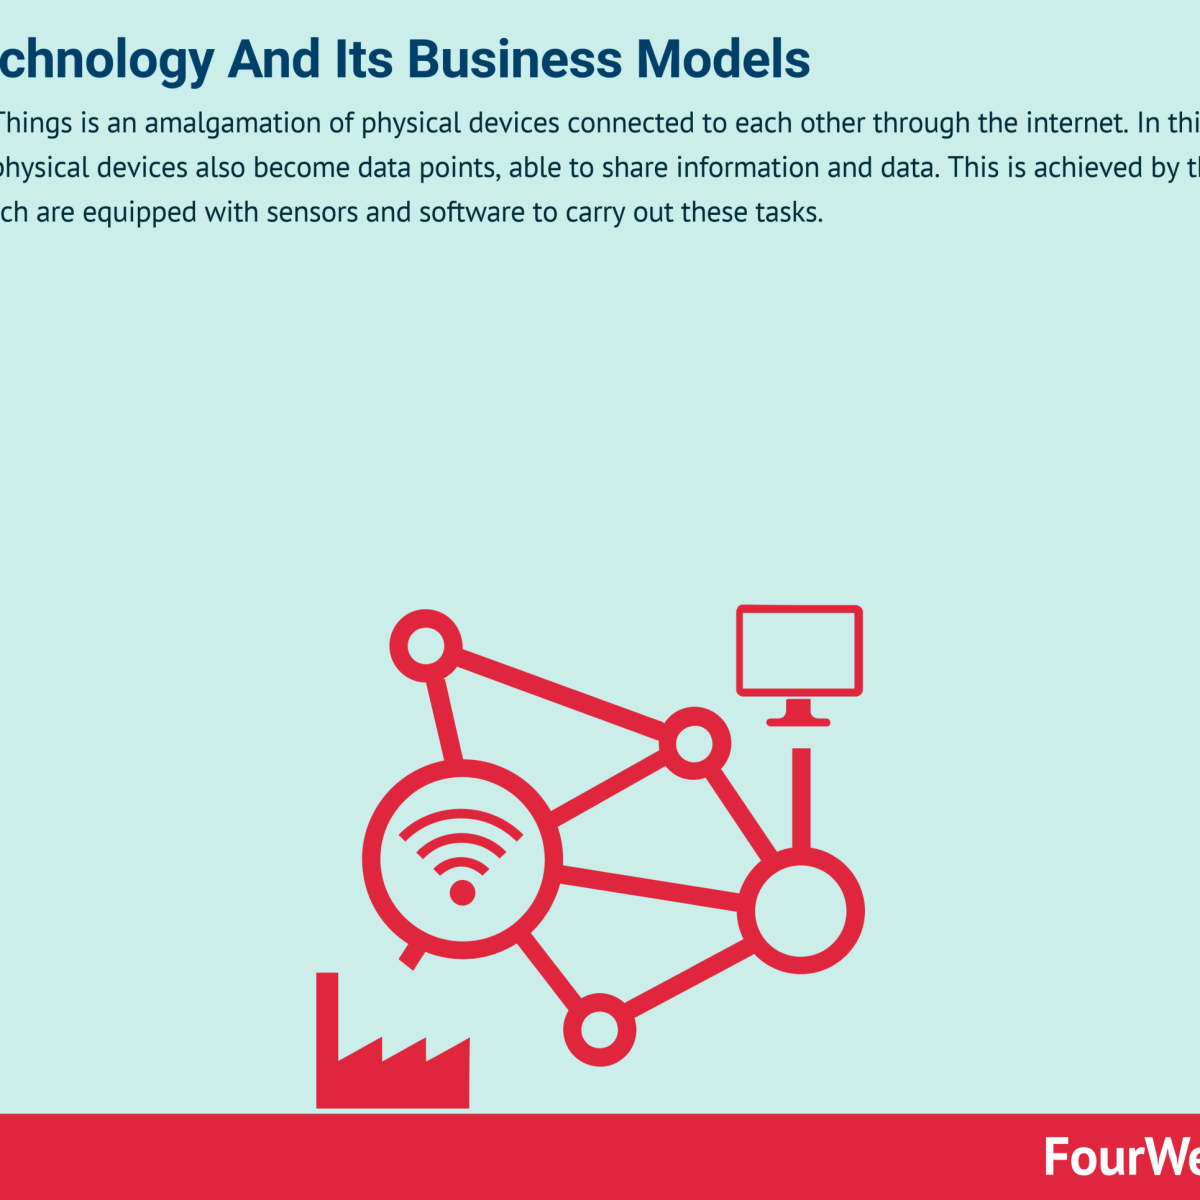 IoT Technology And Its Business Models